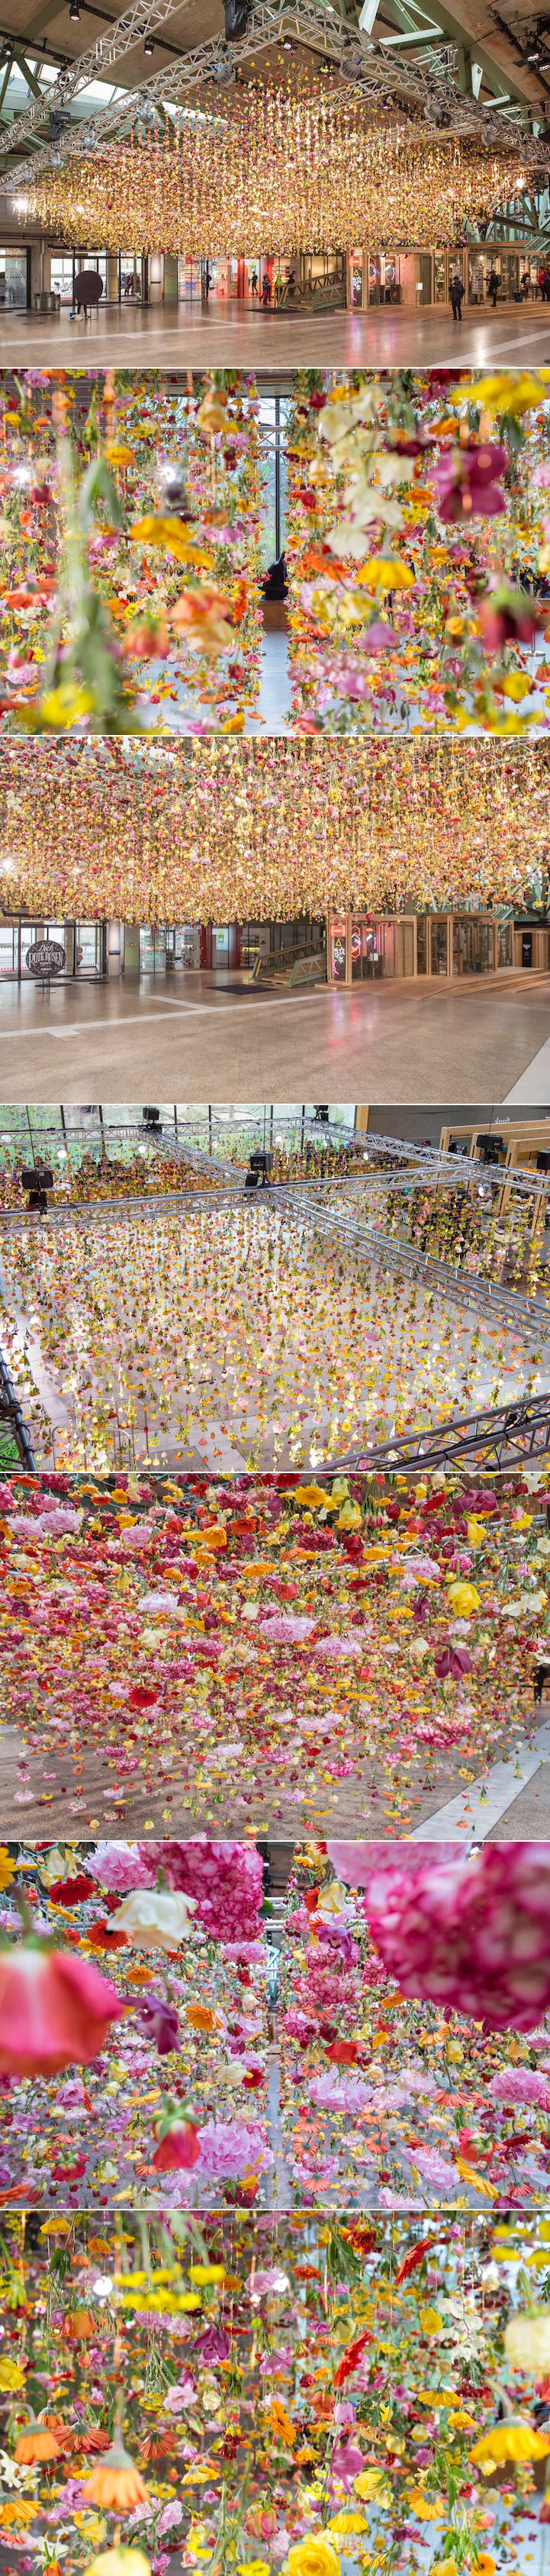 Rebecca Louise Law has created a fantastical canopy of color with over 30,000 suspended flowers.